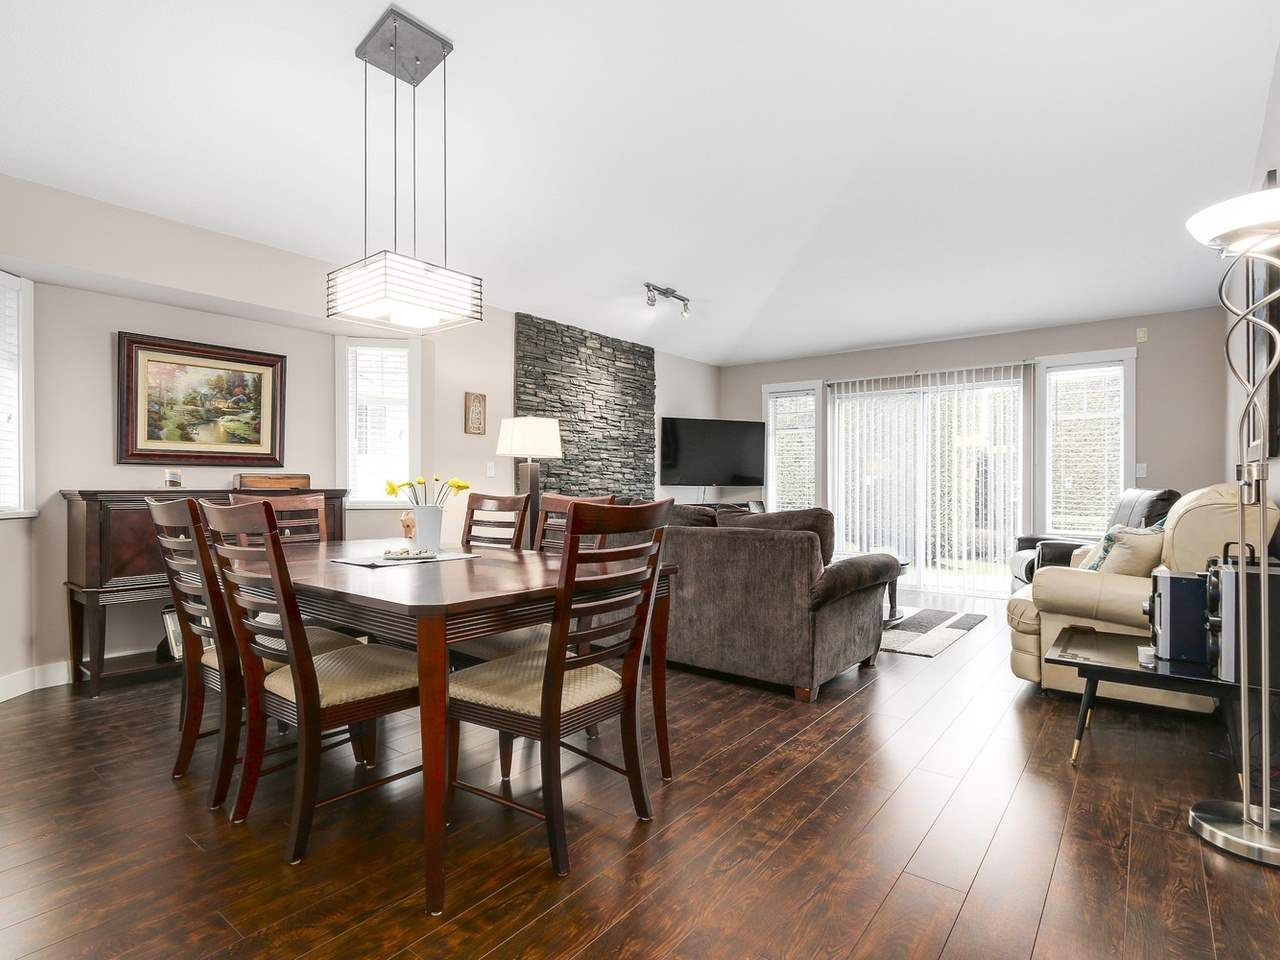 """Photo 4: Photos: 72 9208 208 Street in Langley: Walnut Grove Townhouse for sale in """"CHURCHILL PARK"""" : MLS®# R2155500"""